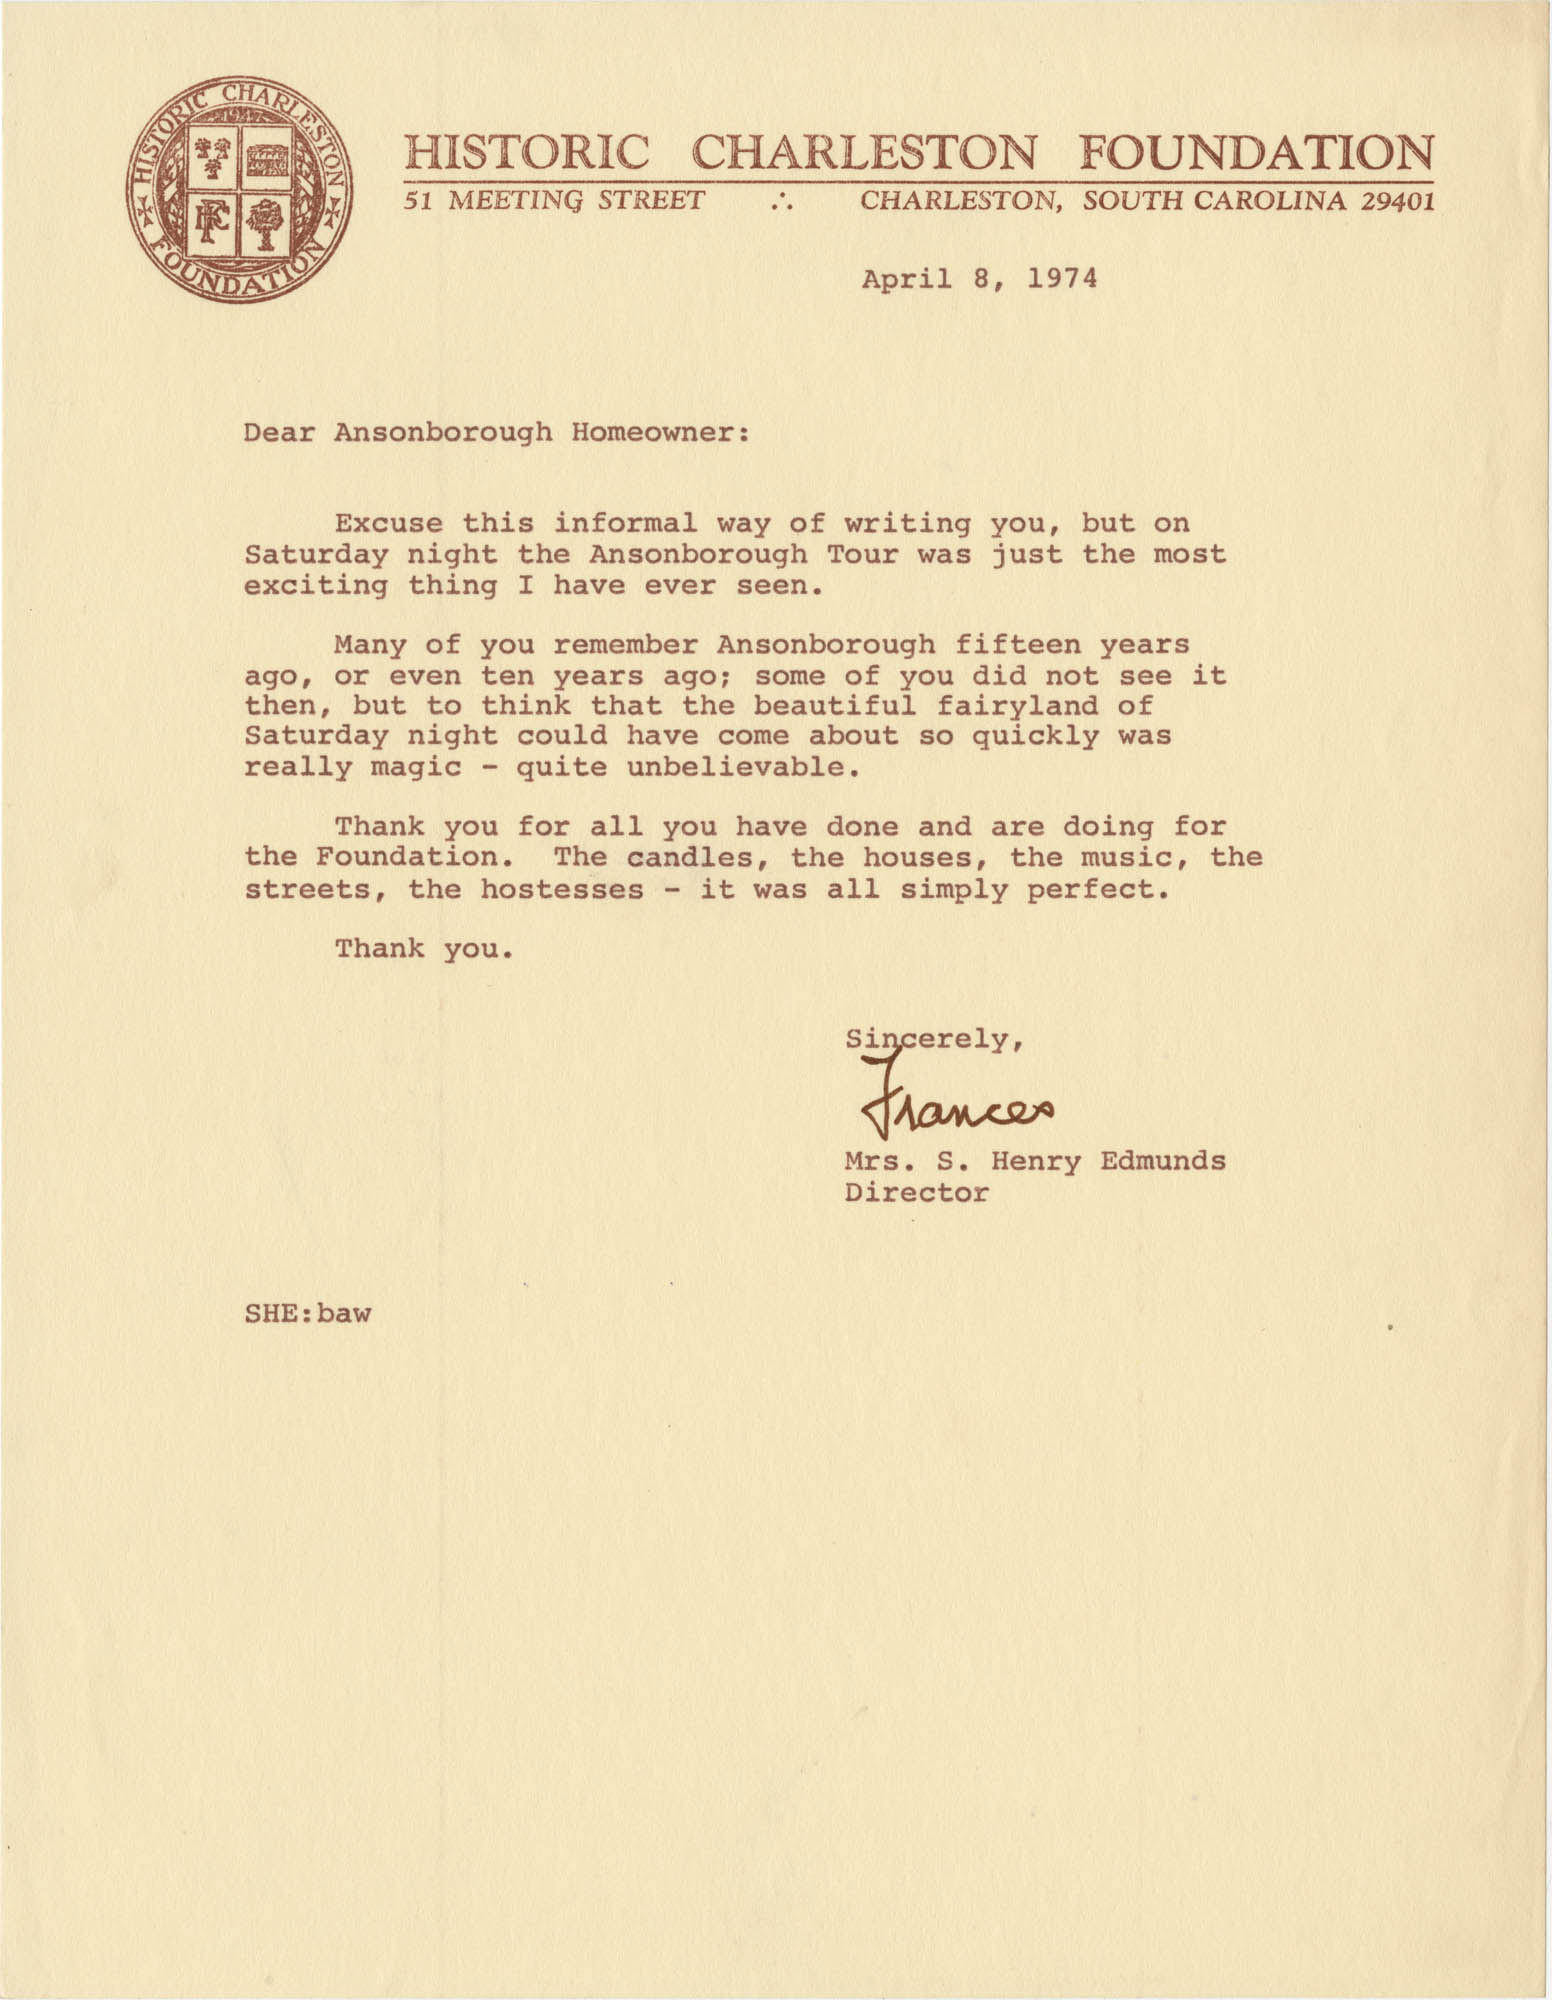 Letter from Mrs. S. Henry Edmunds to Ansonborough homeowners